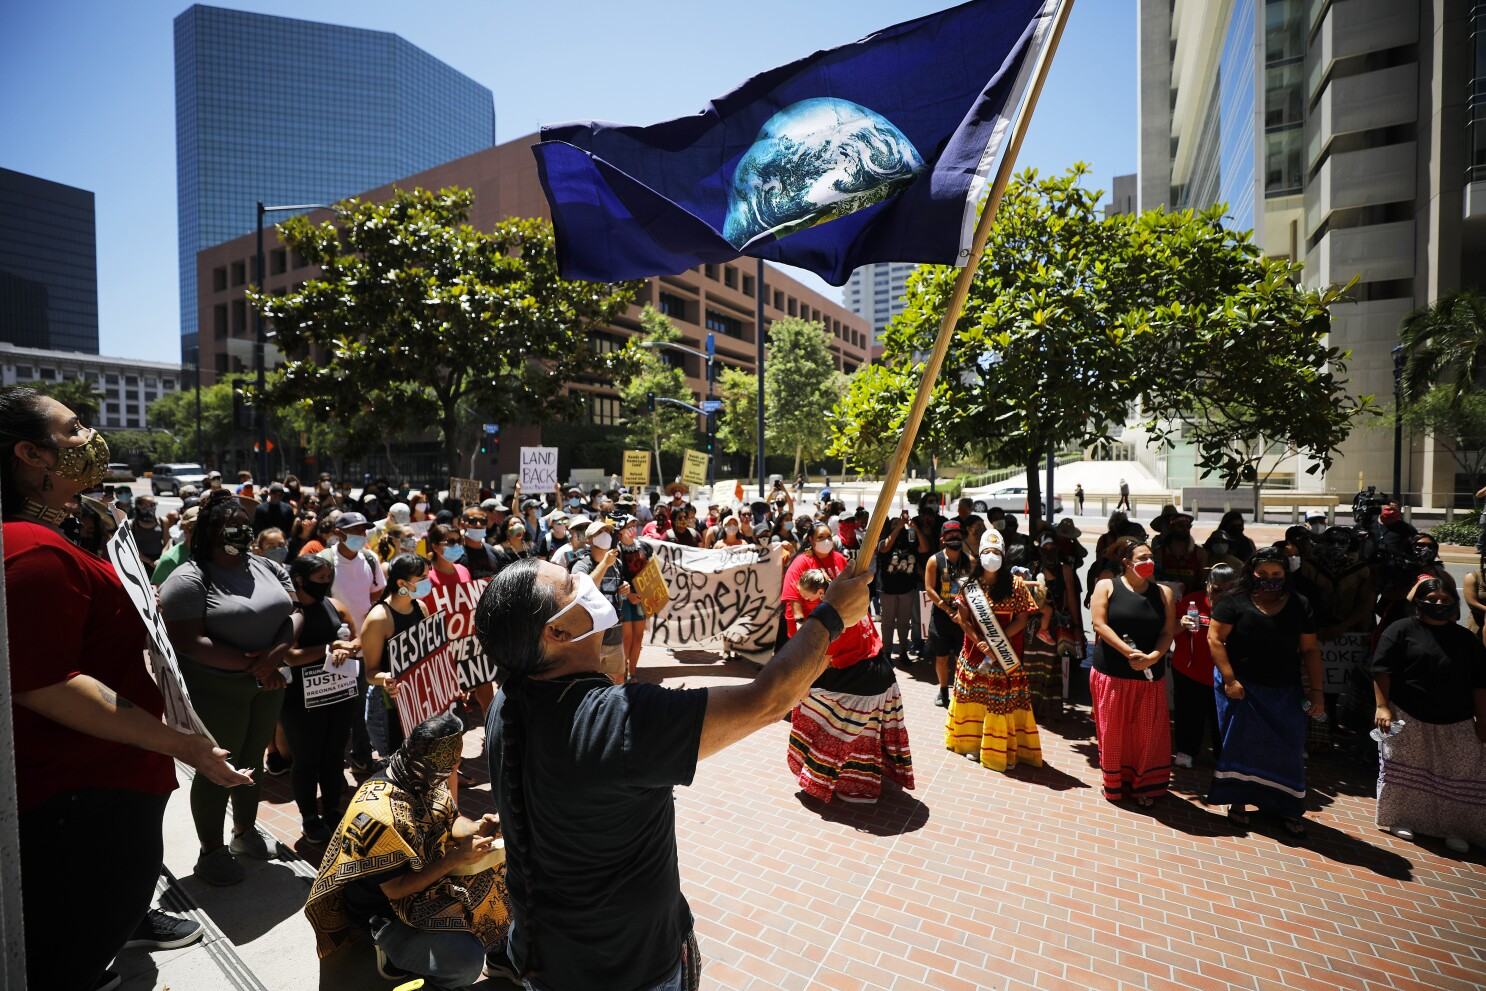 Protest against border wall construction that could desecrate ancient  Kumeyaay lands draws hundreds - The San Diego Union-Tribune